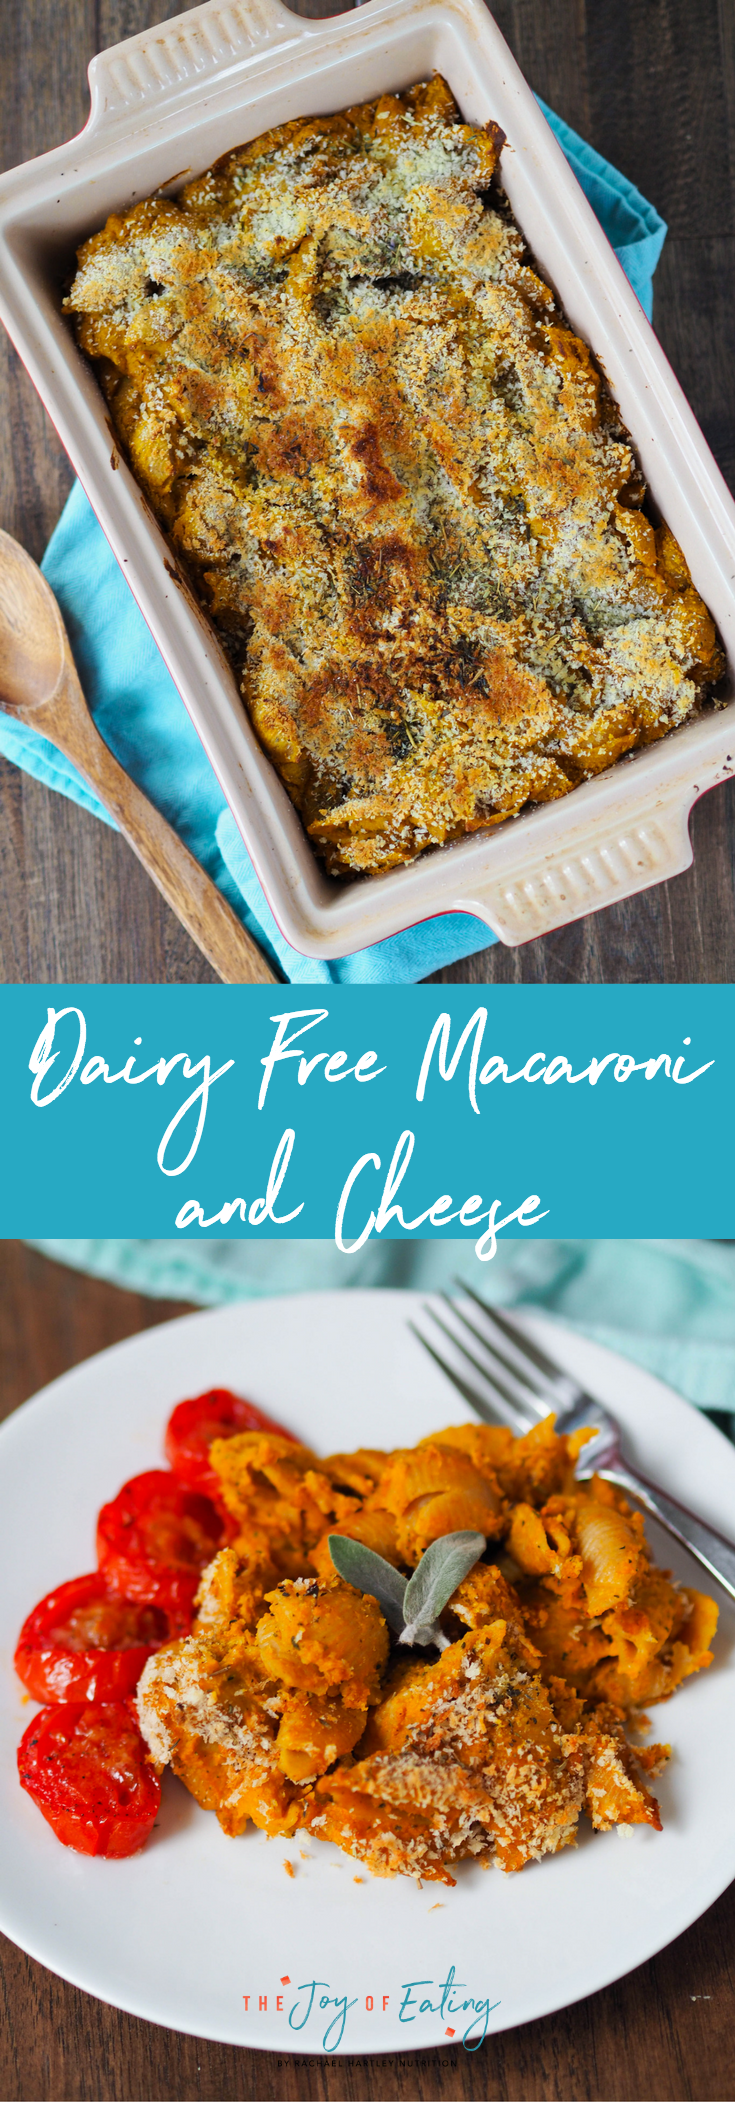 Dairy Free Macaroni and Cheese.png